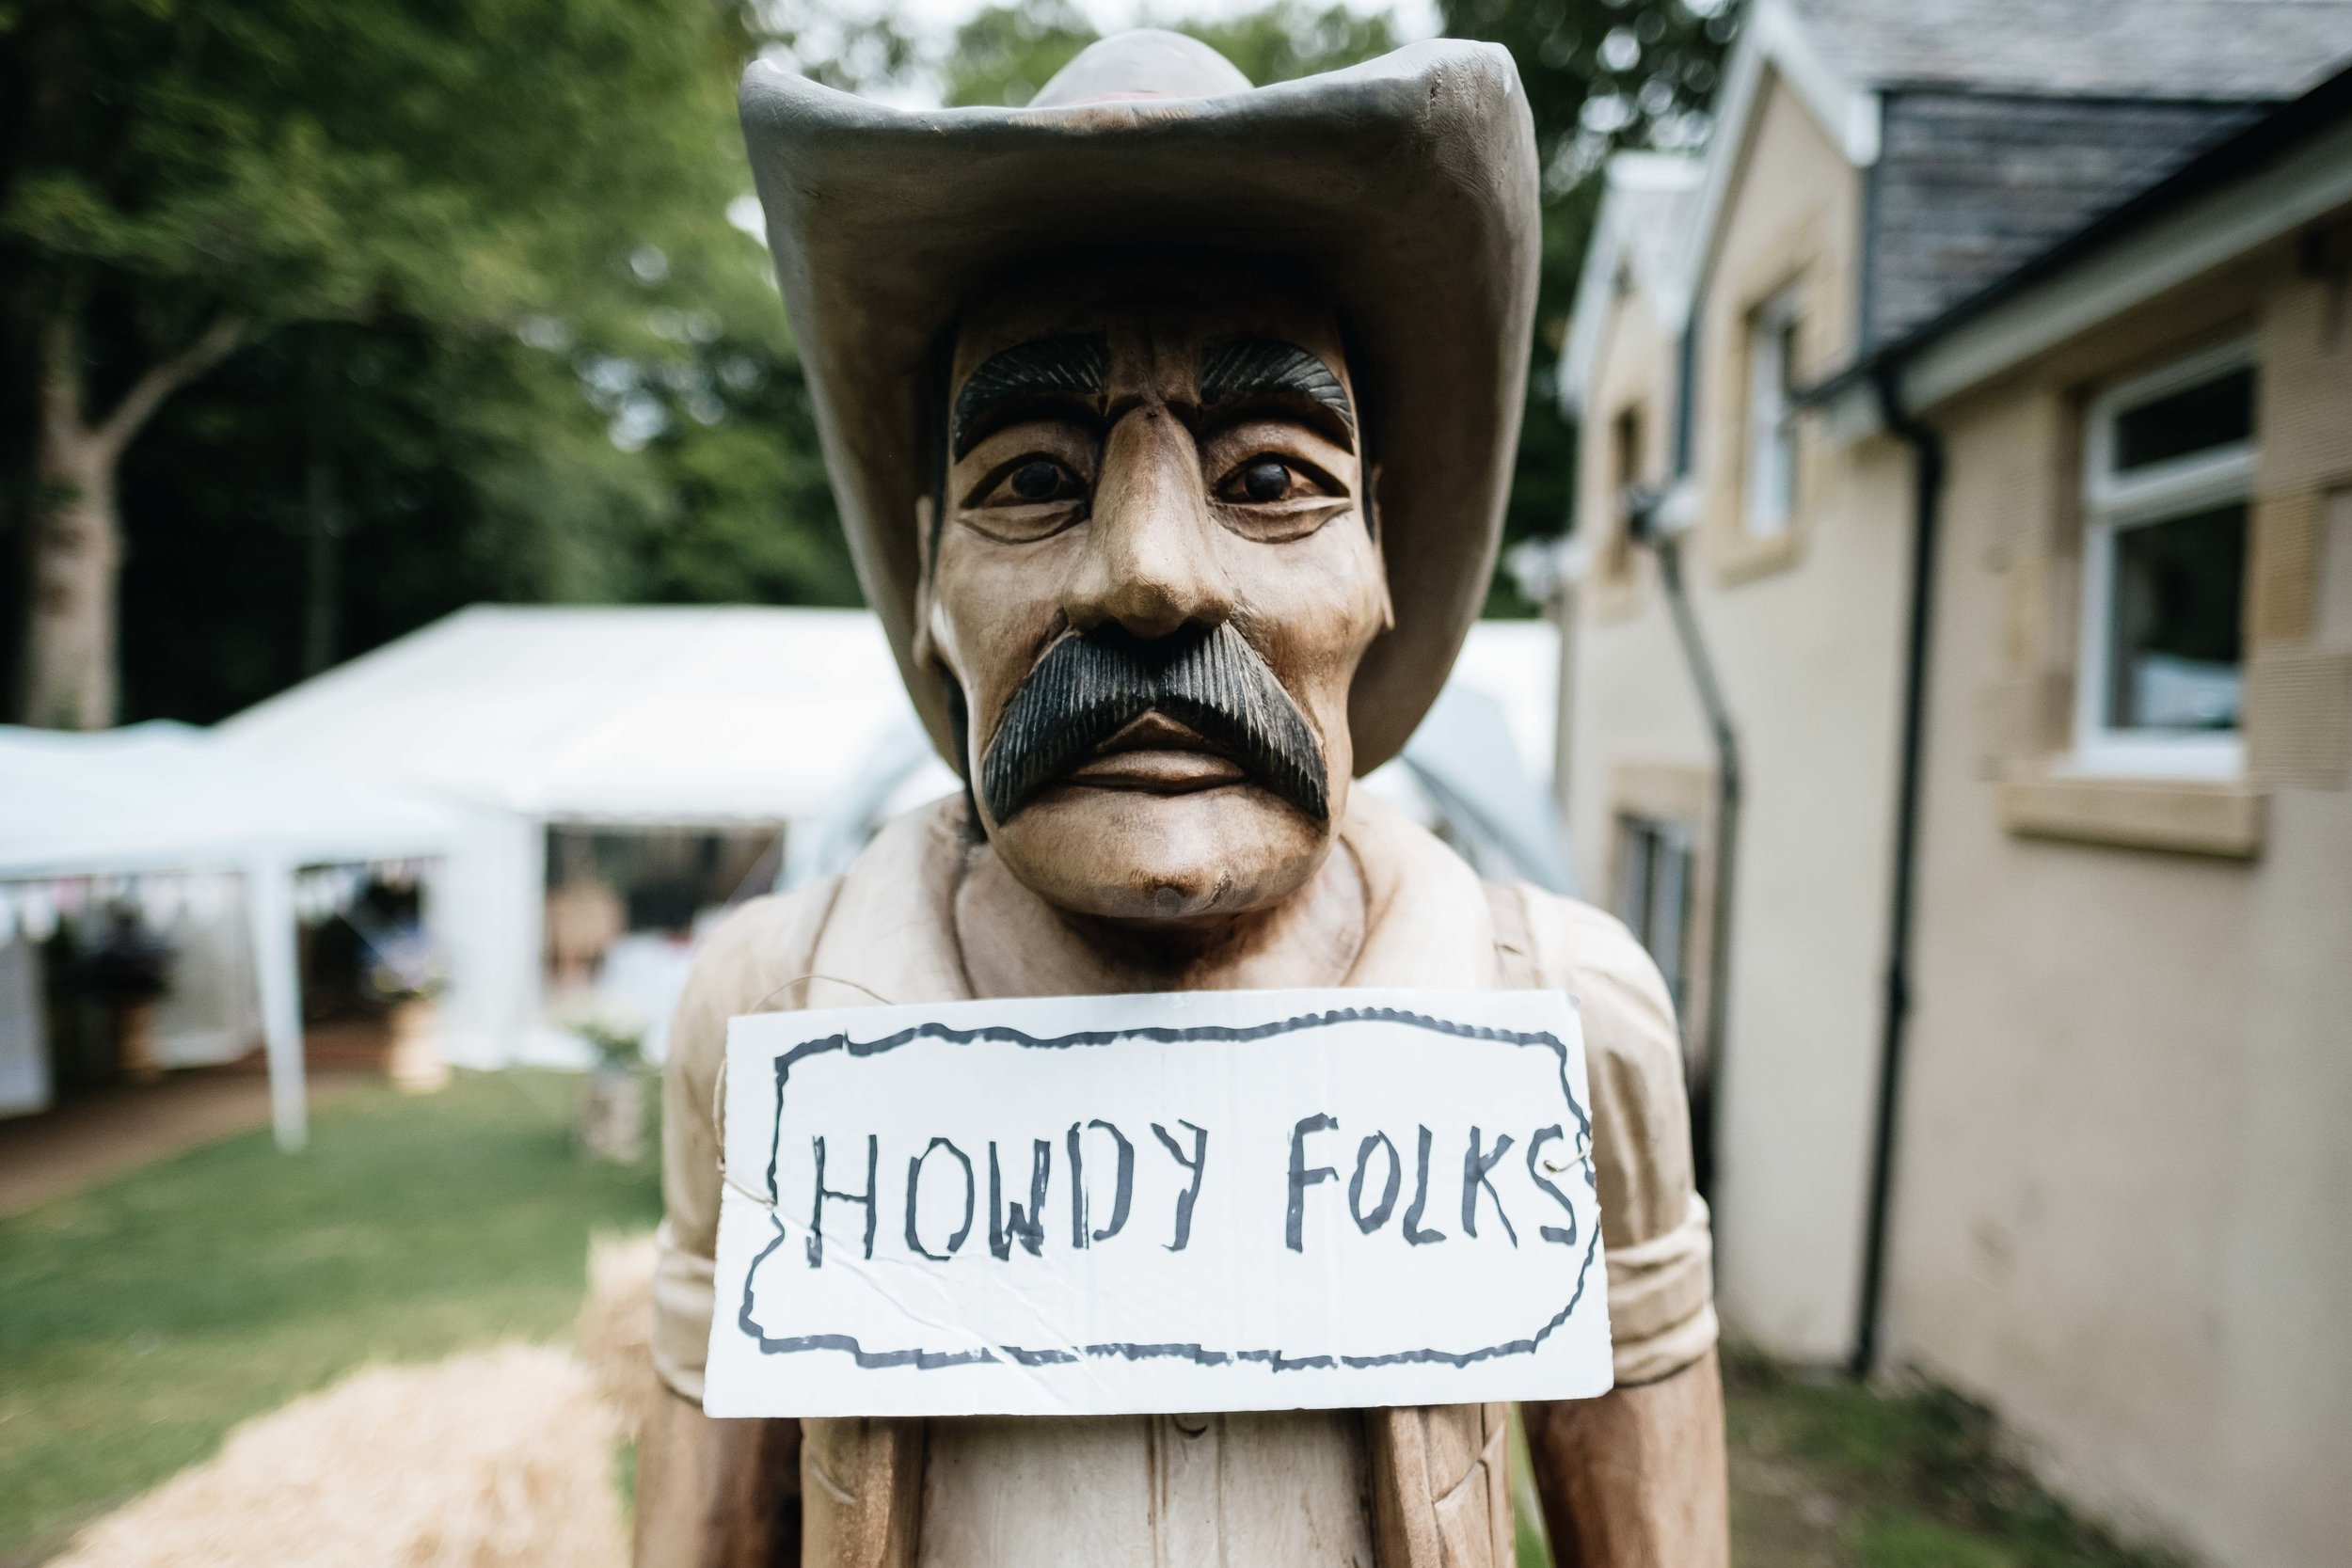 american cowboy statue with 'Howdy' sign on it